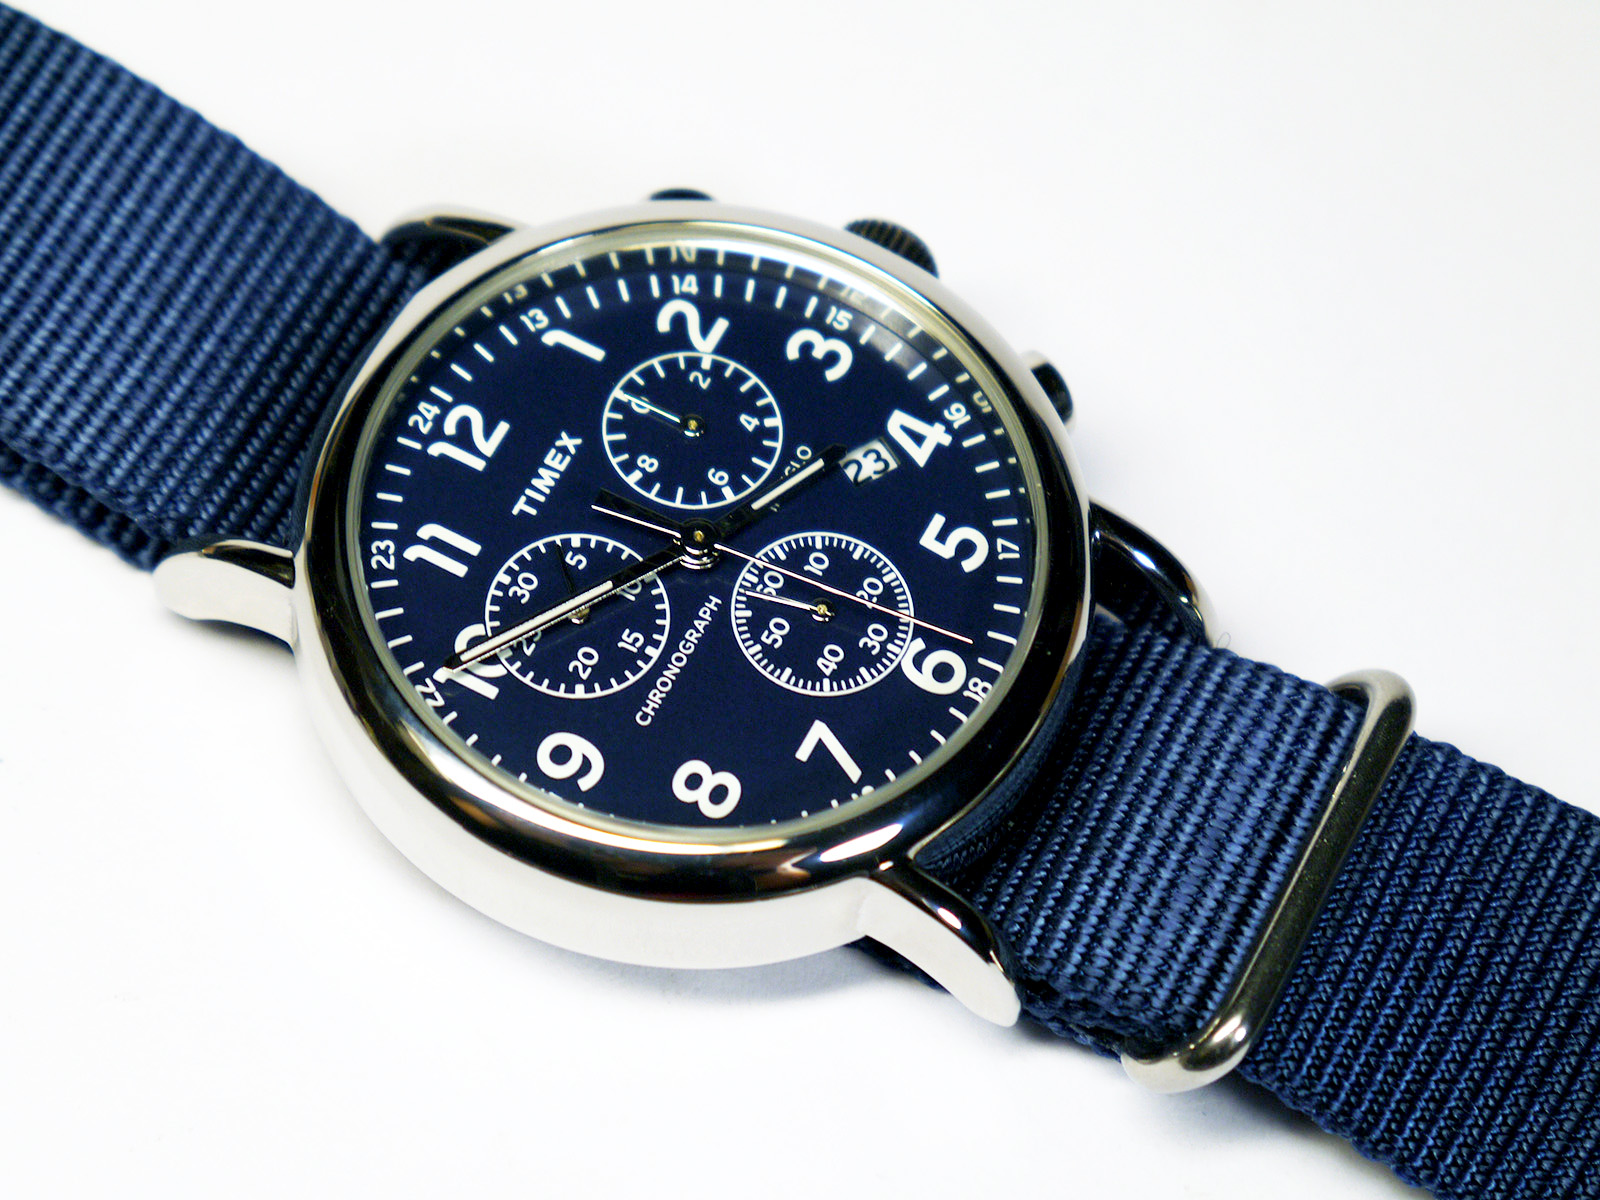 Timex Tw2p71300 Weekender Watch High Quality Gallery Fairfield Chronograph Tw2r37800 Original Imex Collection Blue With Nylon Band